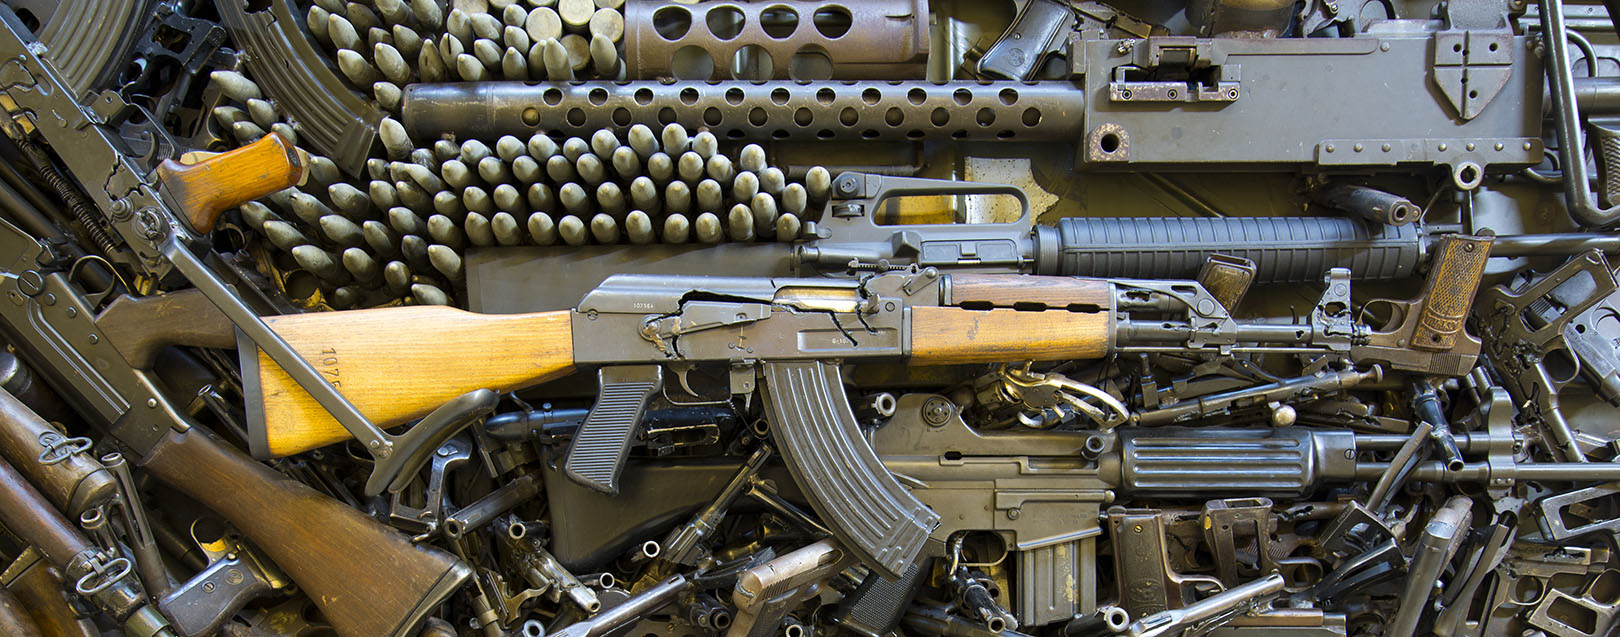 India world's largest arms importer over last 5 years